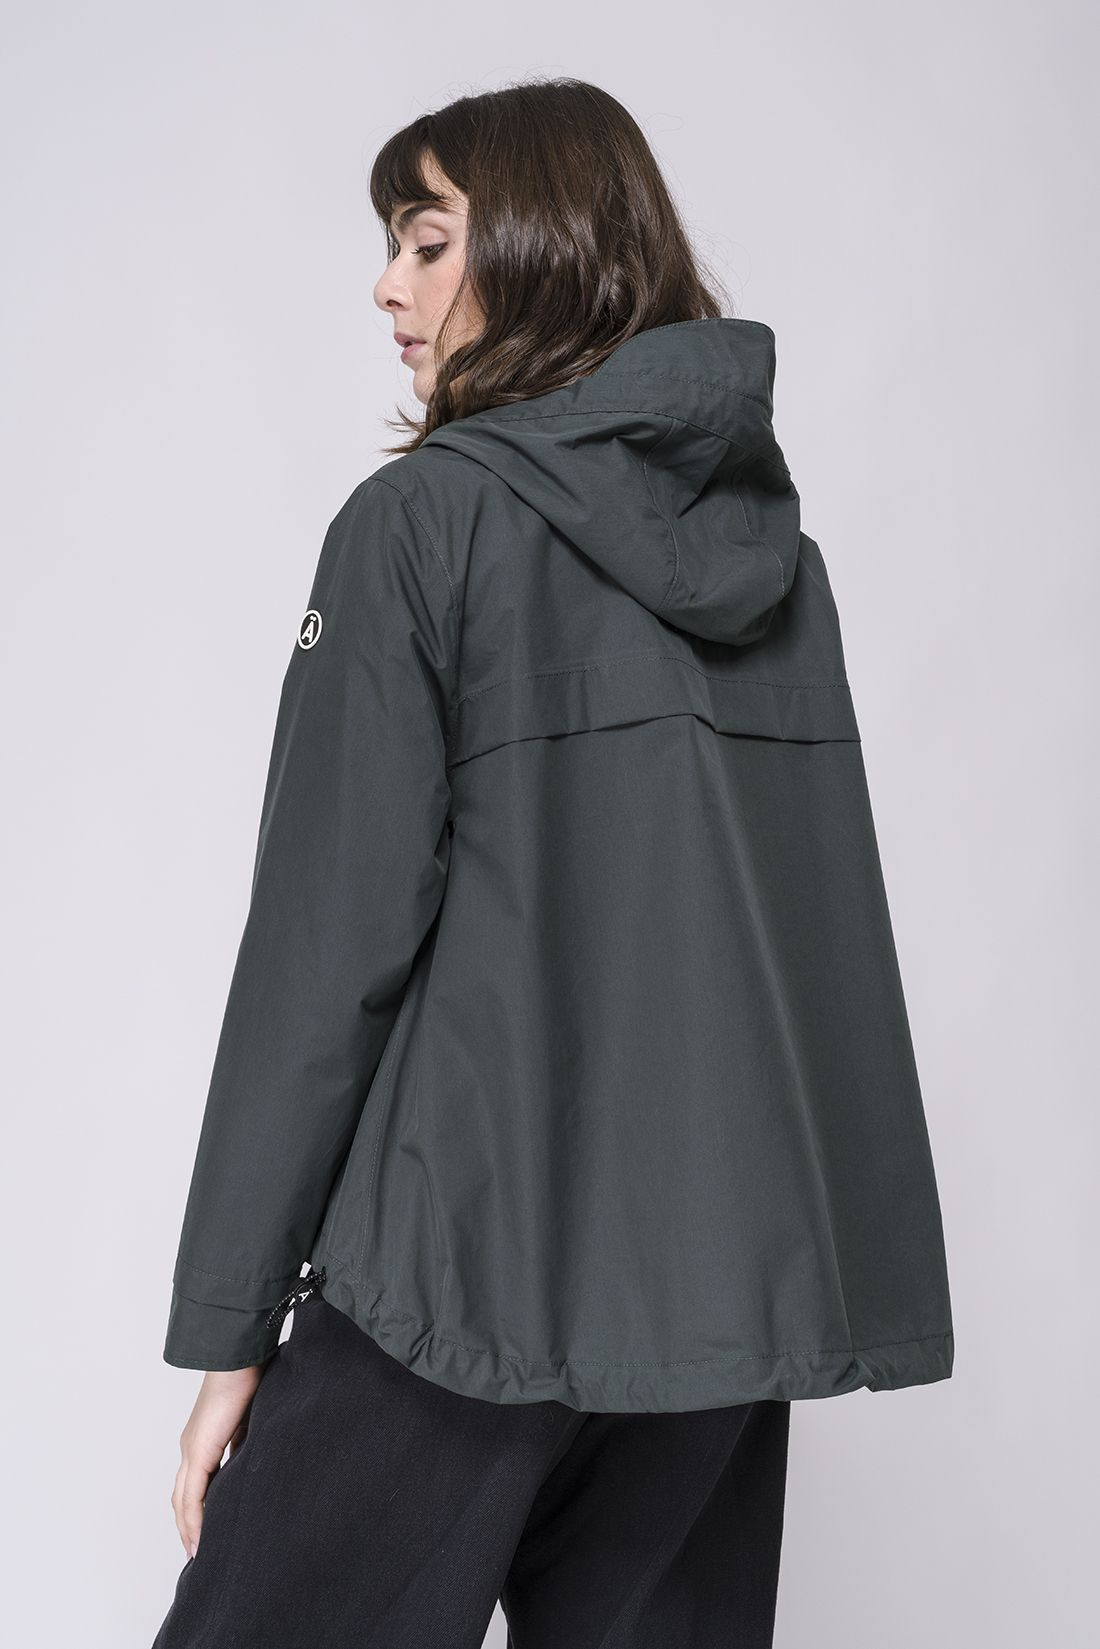 t3092 hodei dark green 21 vmxx